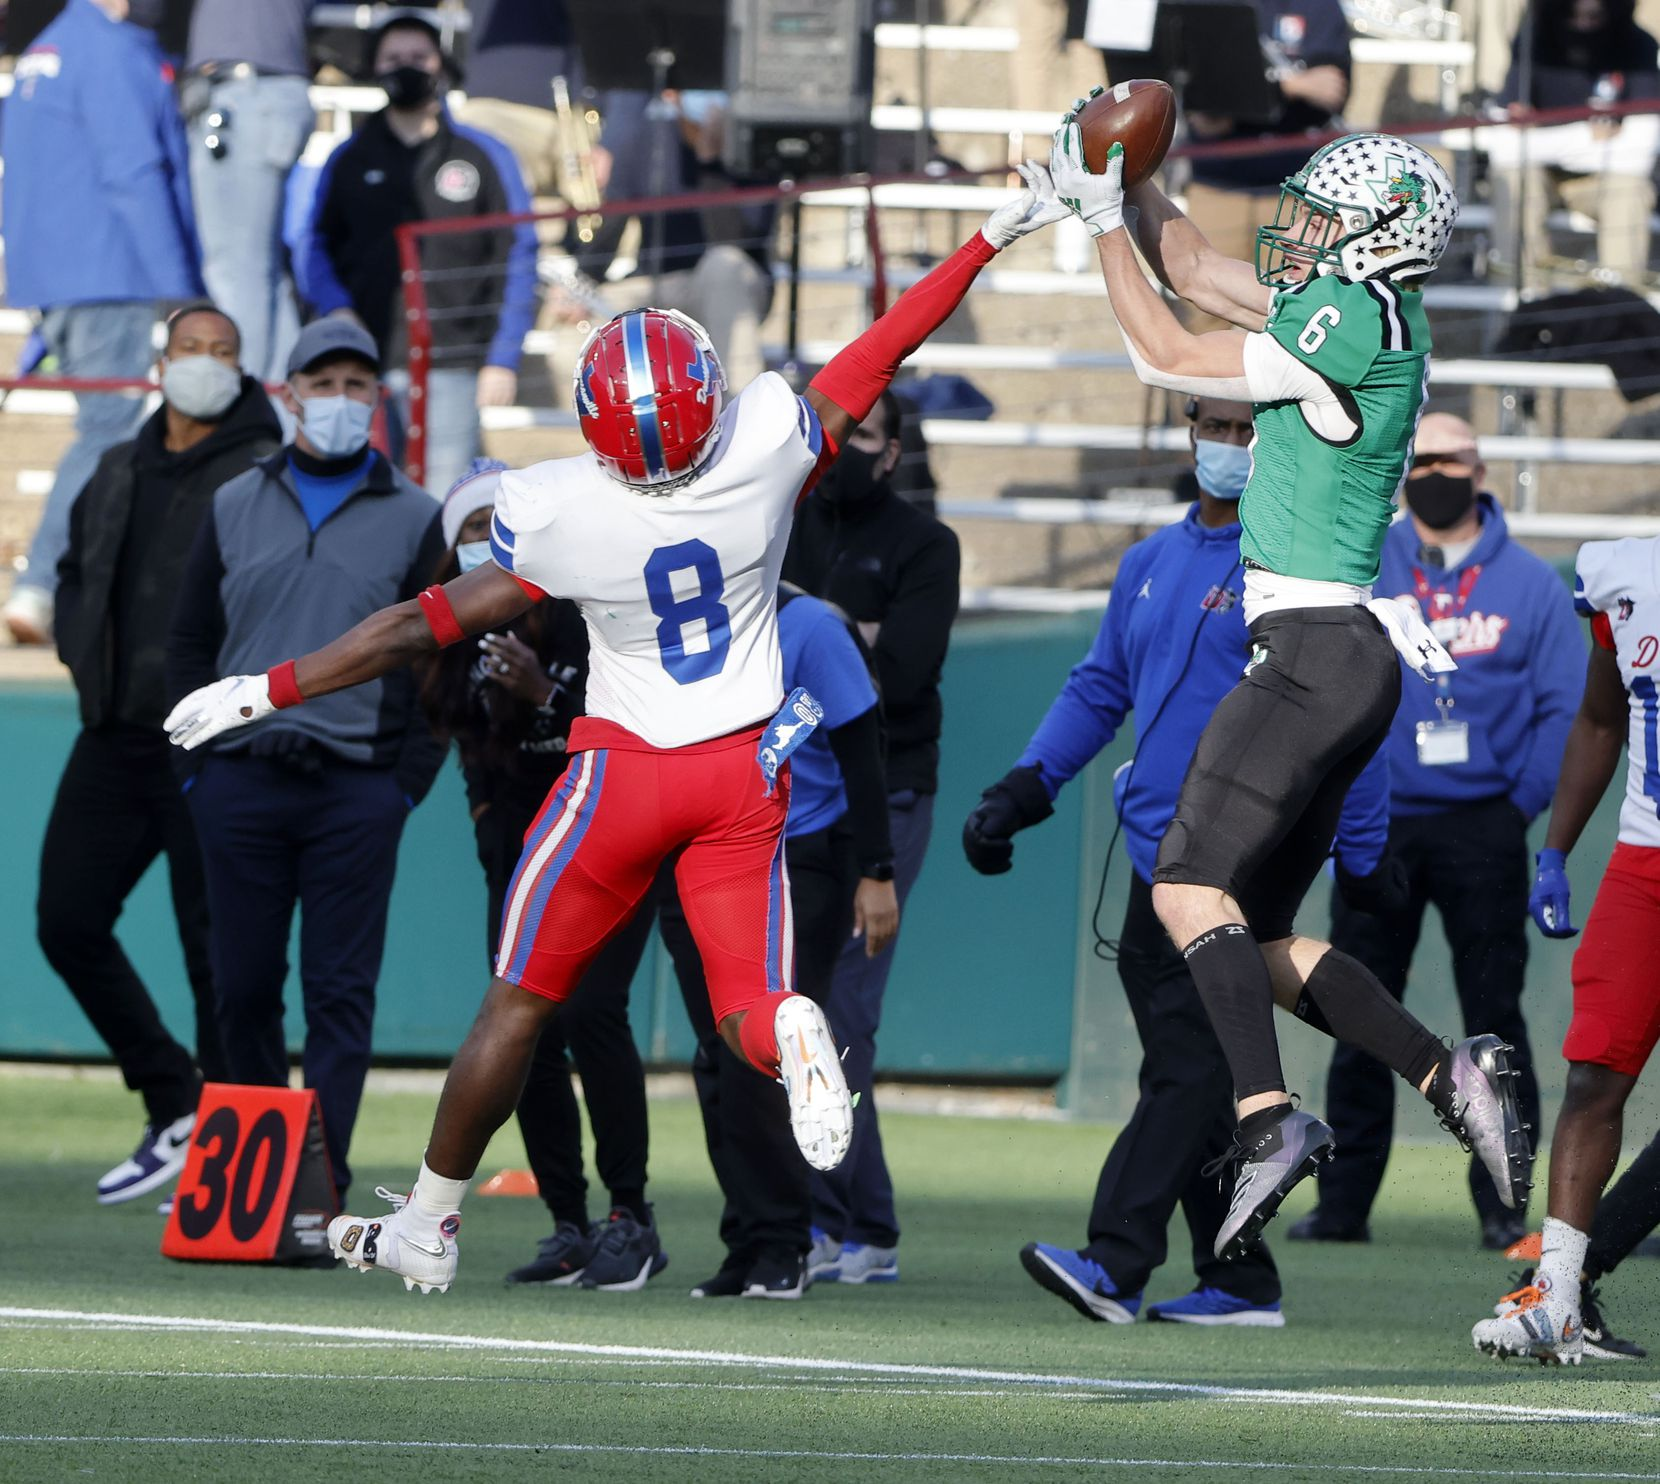 Southlake receiver Landon Samson (6) grabs a touchdown pass in front of Duncanville defender Jadarius Thursby (8) during the Class 6A Division I state high school football semifinal in Arlington, Texas on Jan. 9, 2020. (Michael Ainsworth)